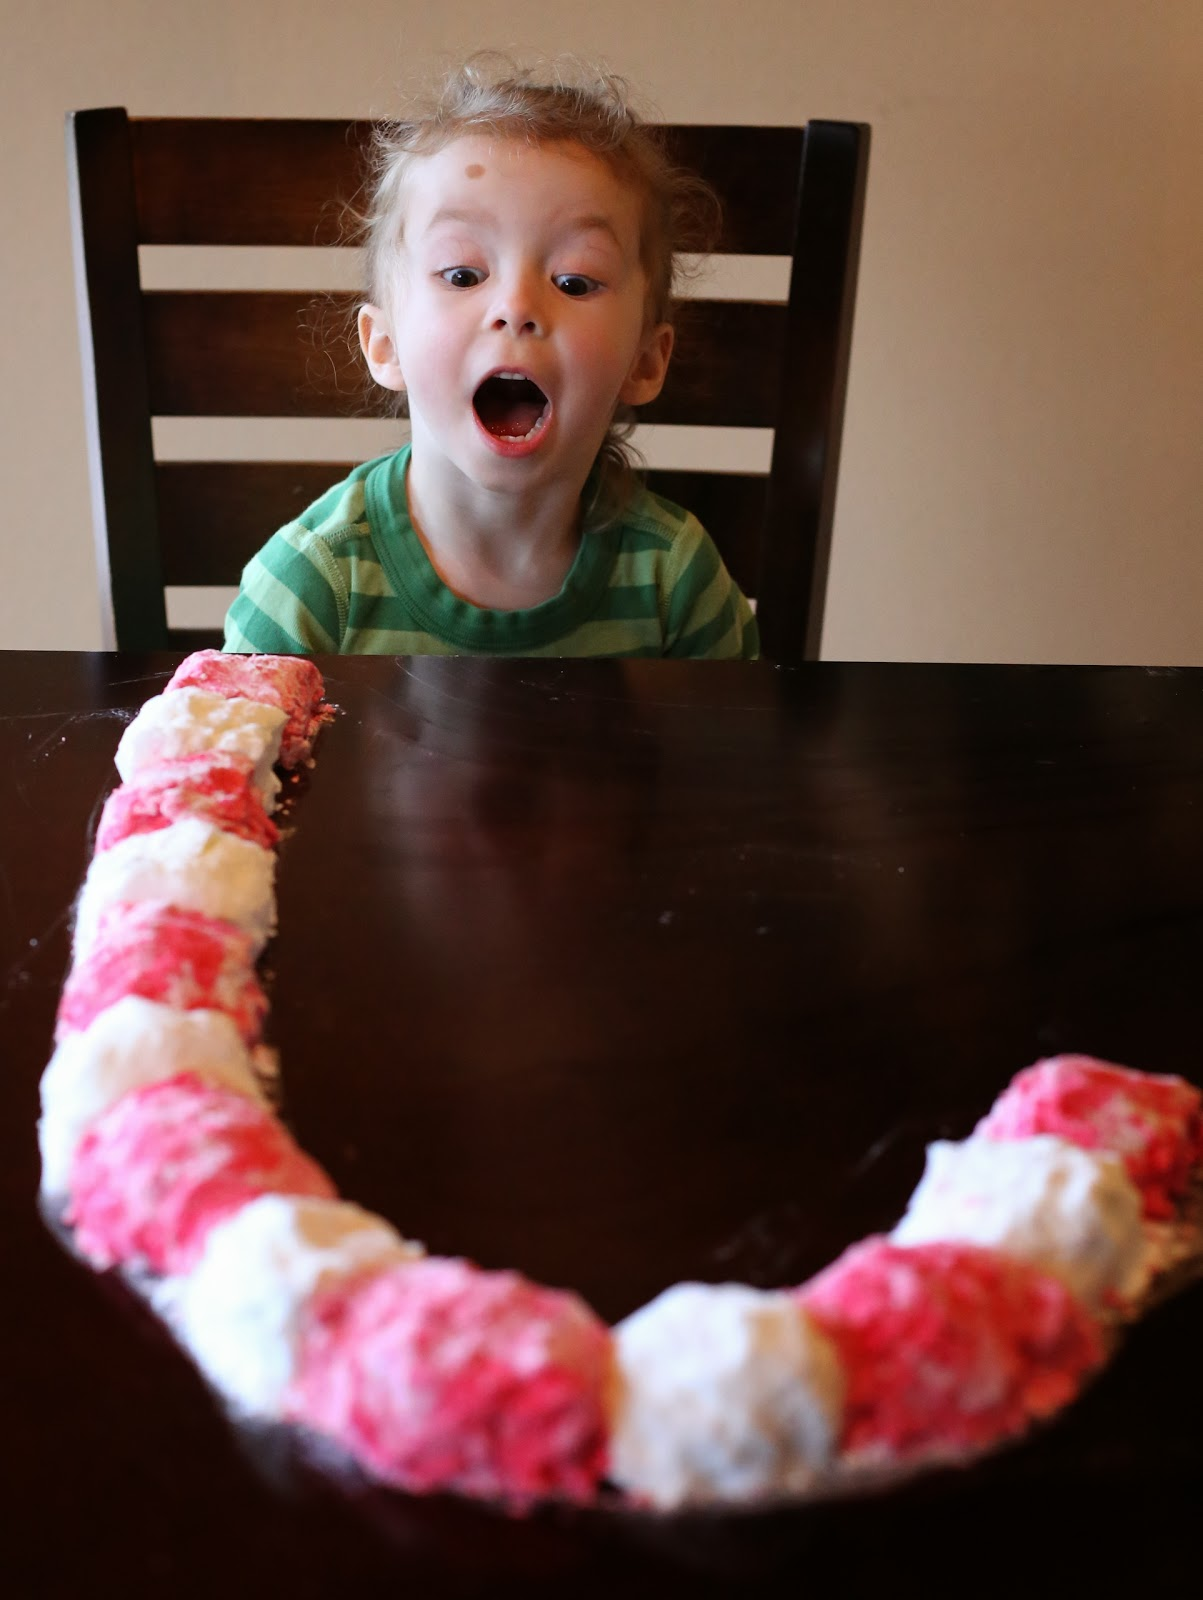 Candy Cane Foam Dough Recipe from Fun at Home with Kids - three amazing sensory experiences from just one recipe!